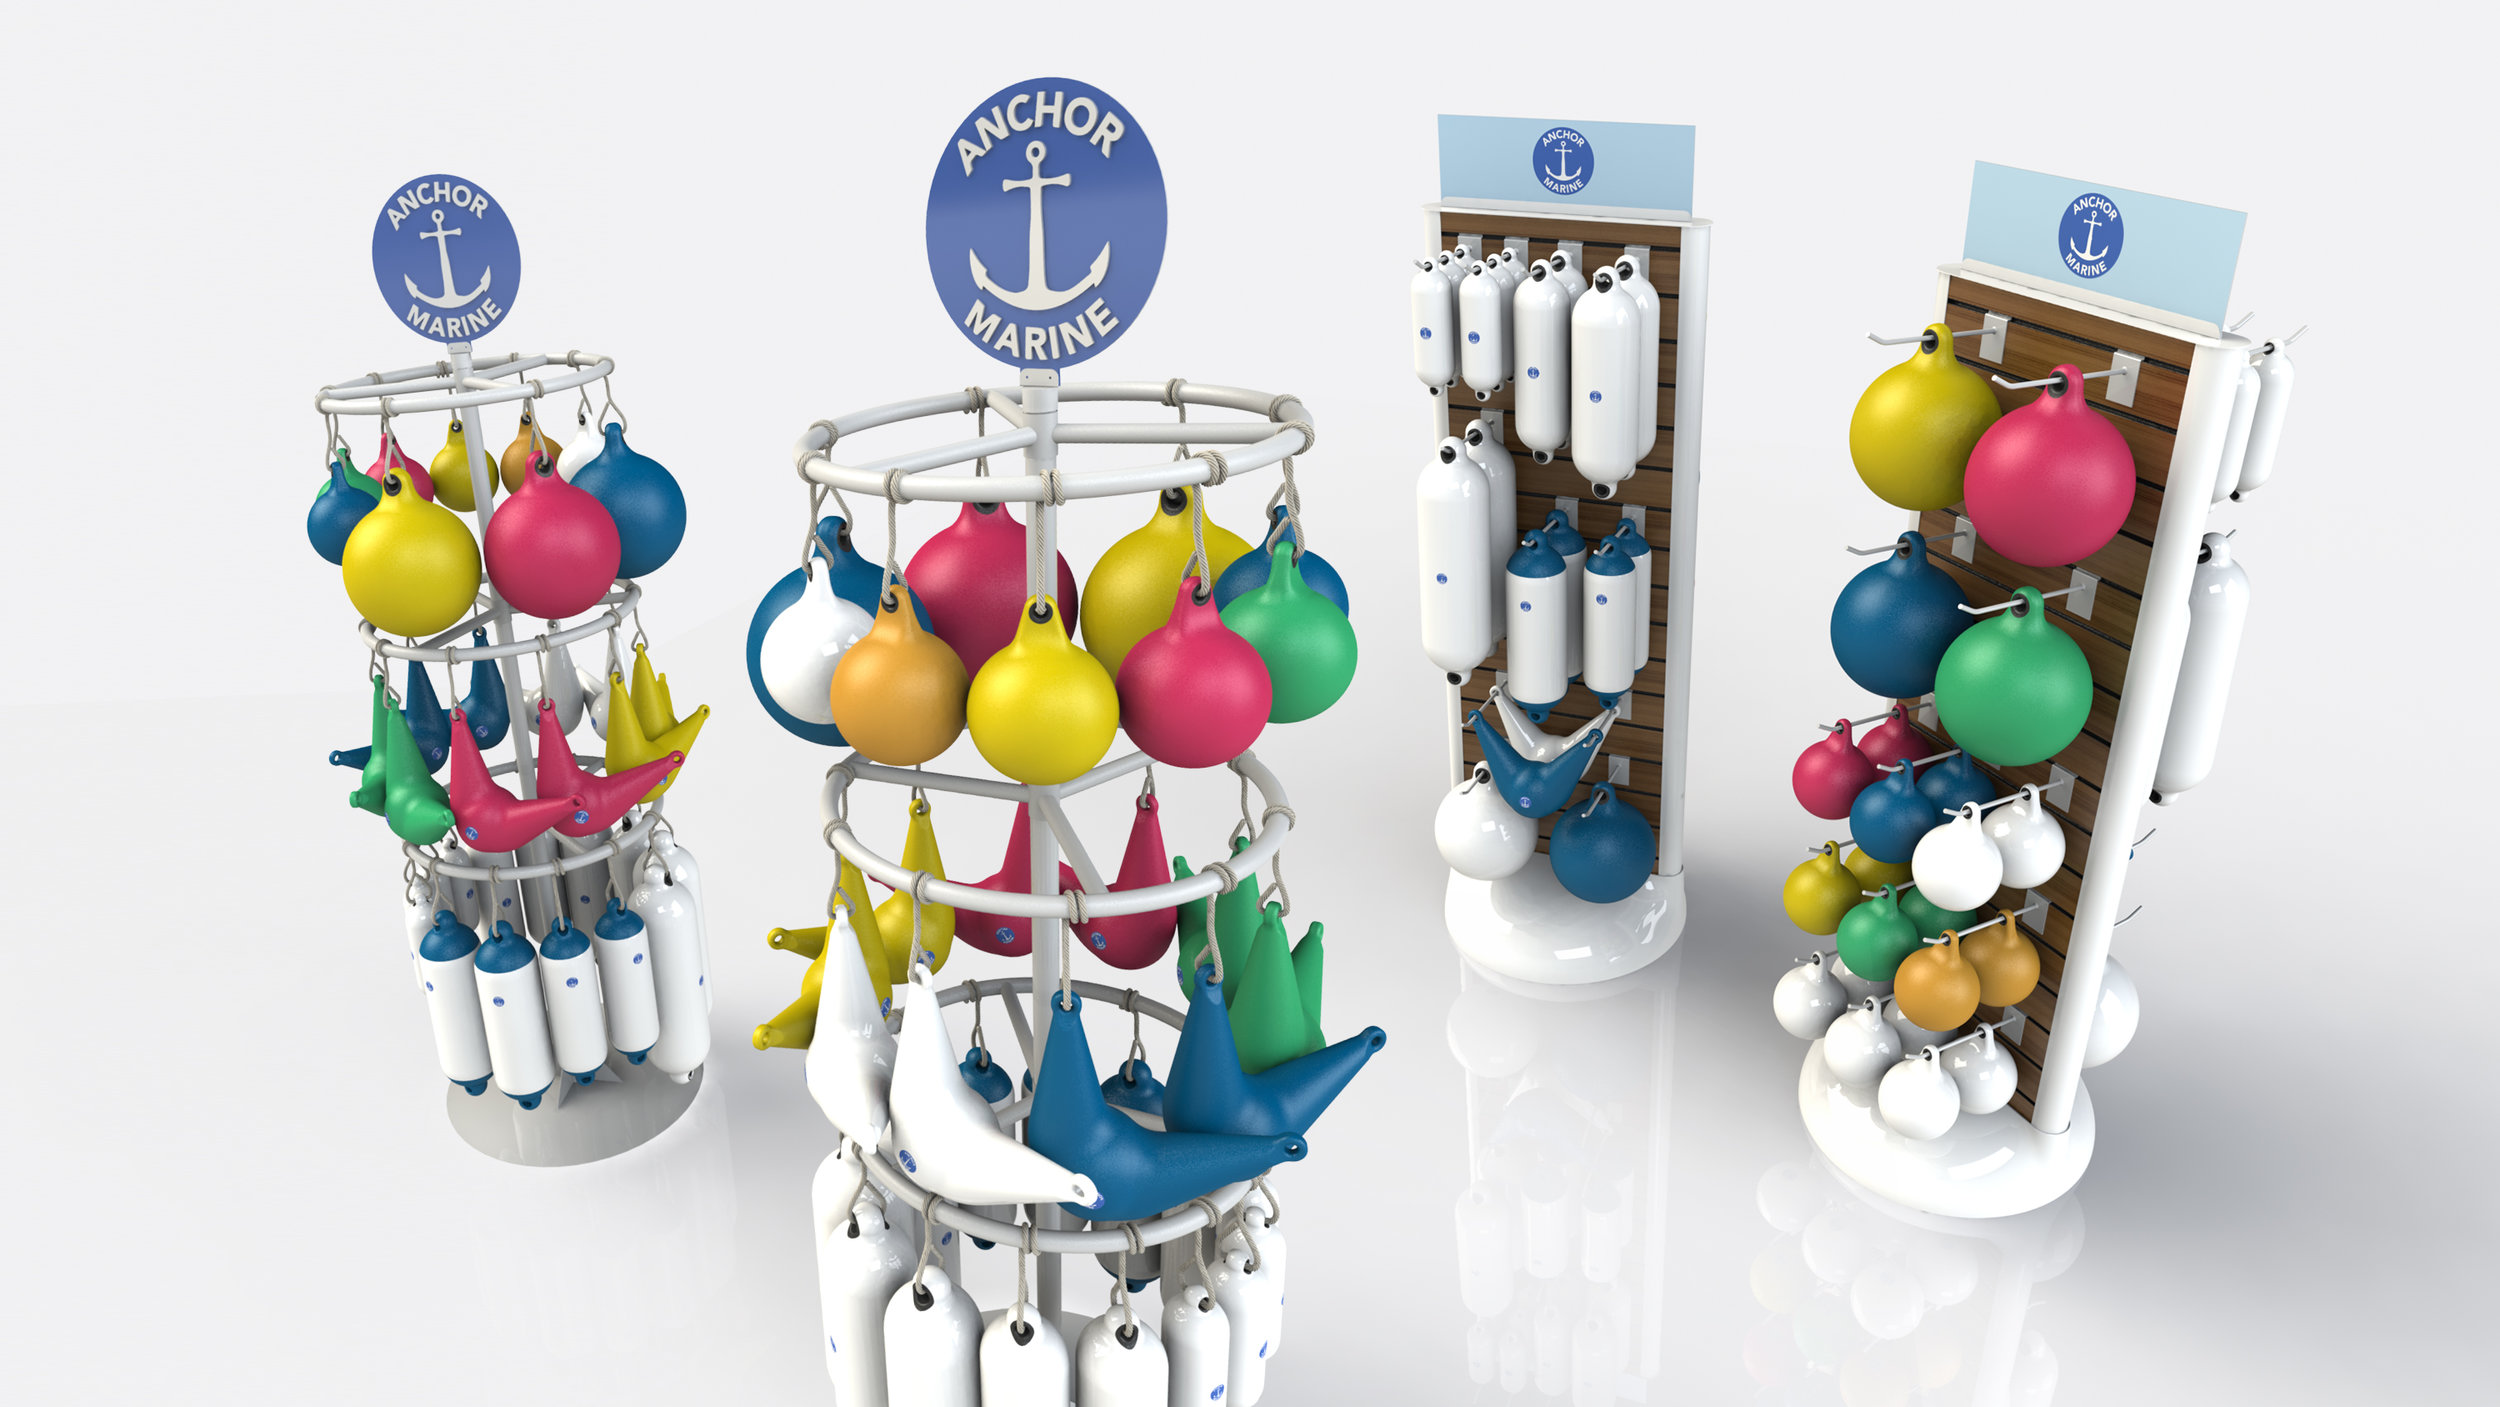 Buoy Display Concepts for Anchor Marine